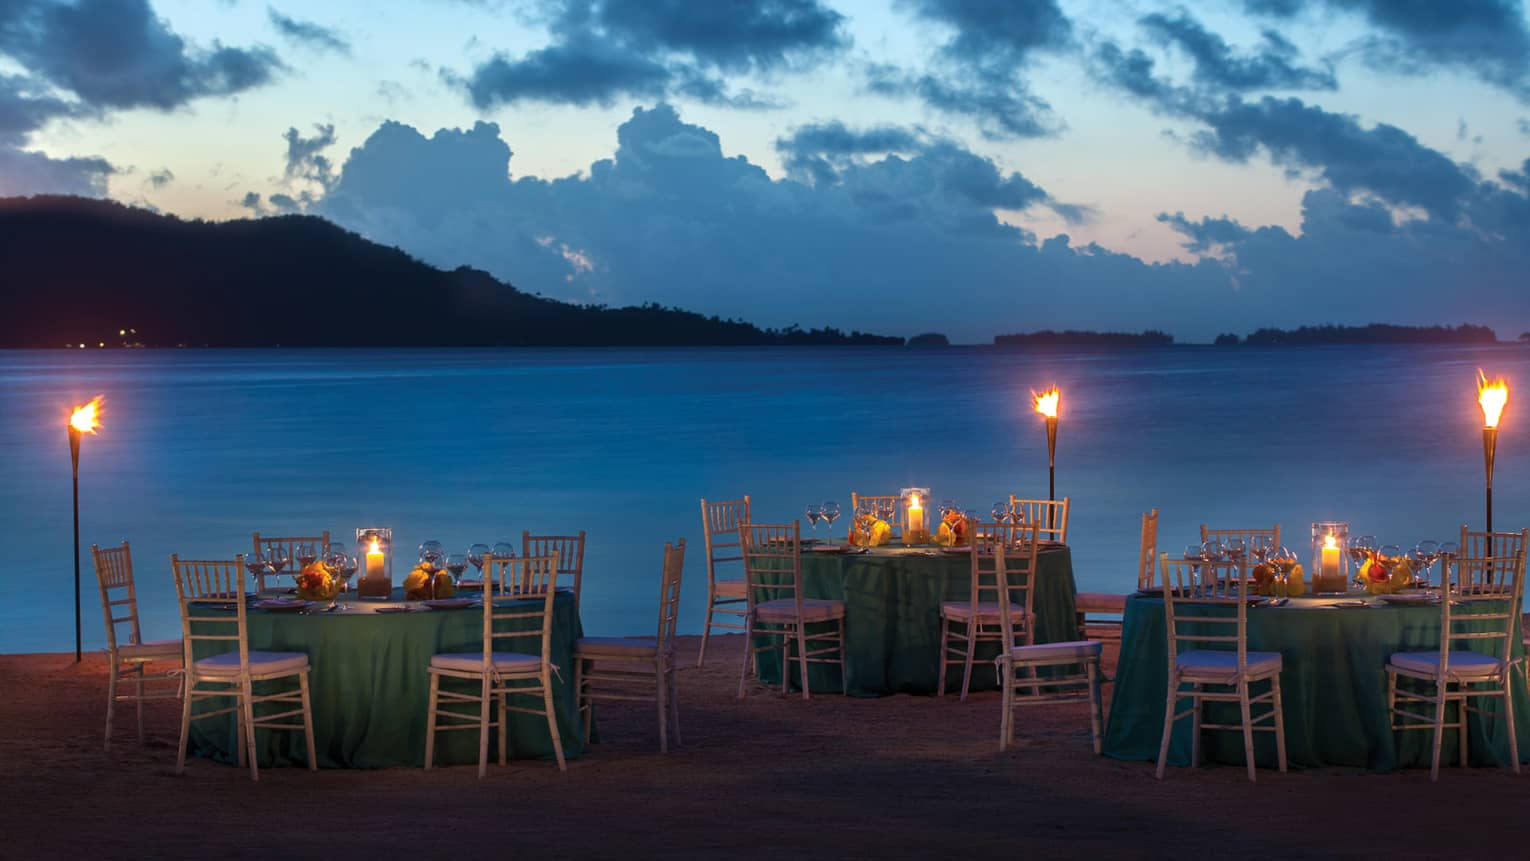 Fare Hoa Beach at dusk with candle-lit dining tables and torches